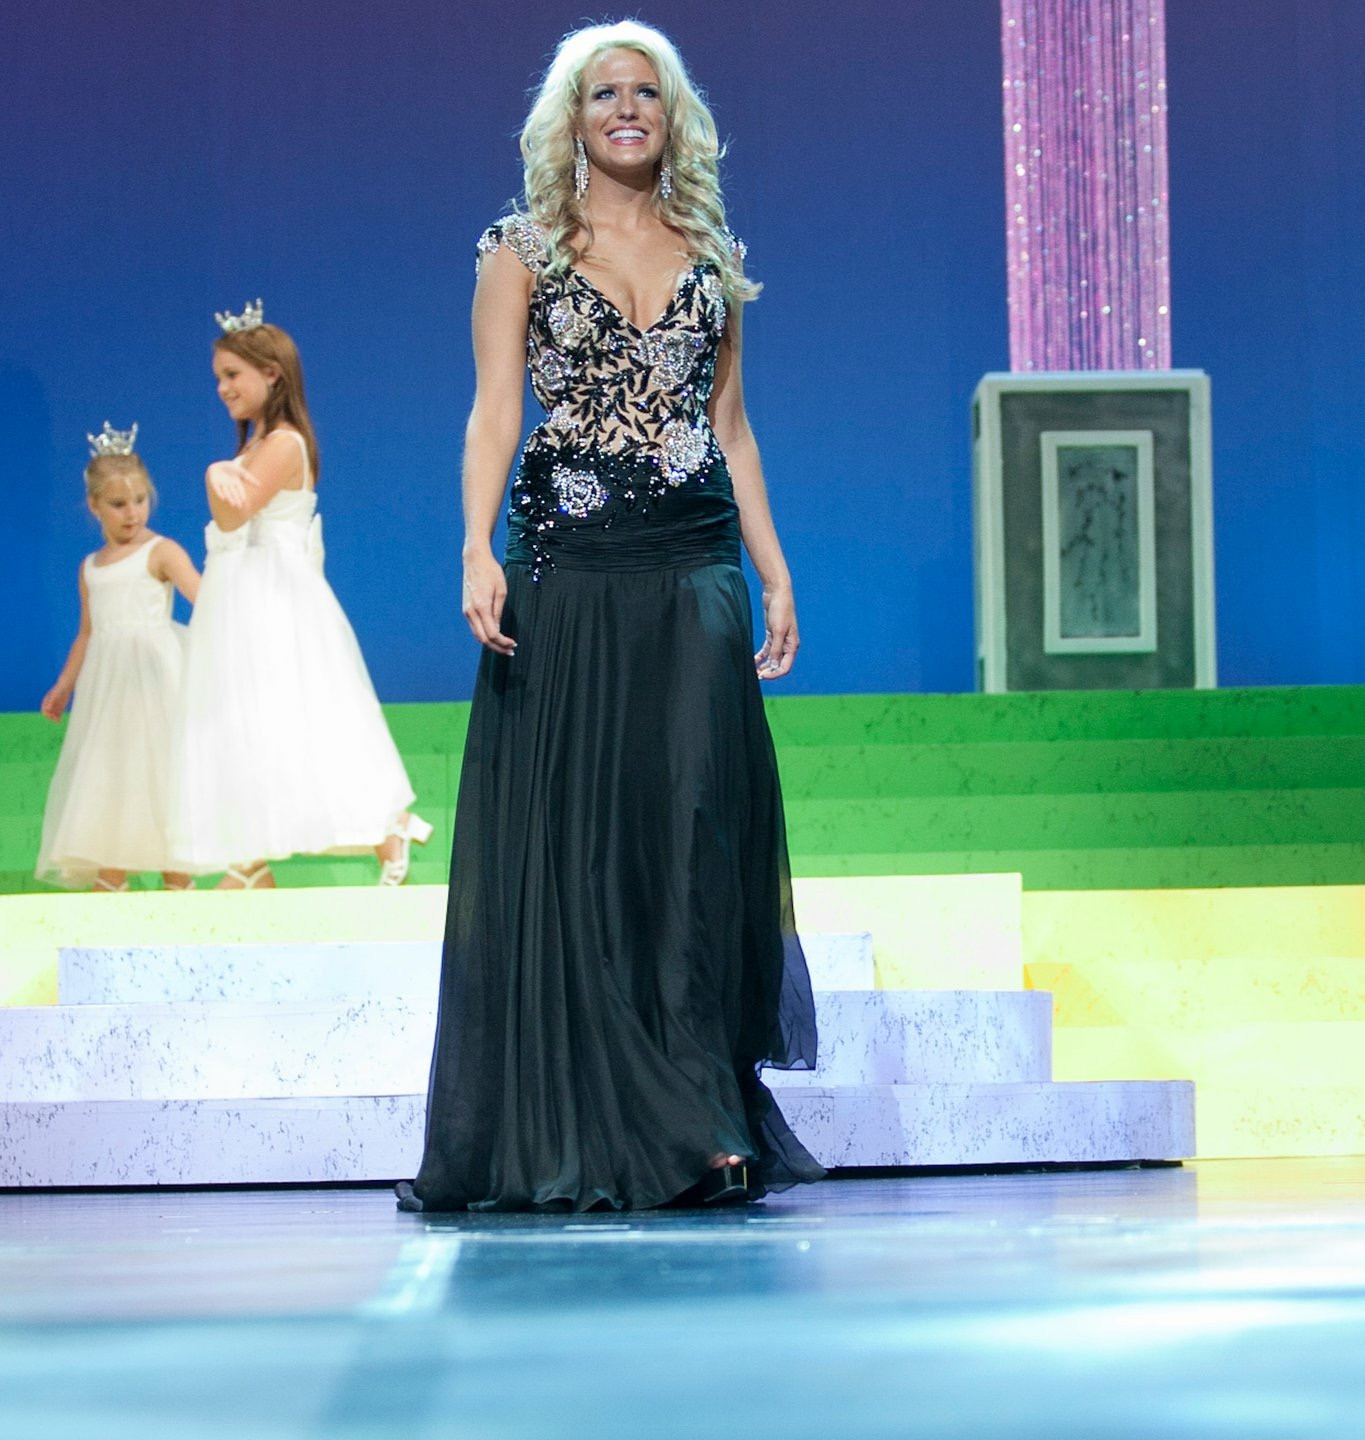 Miss Texas Evening Gown